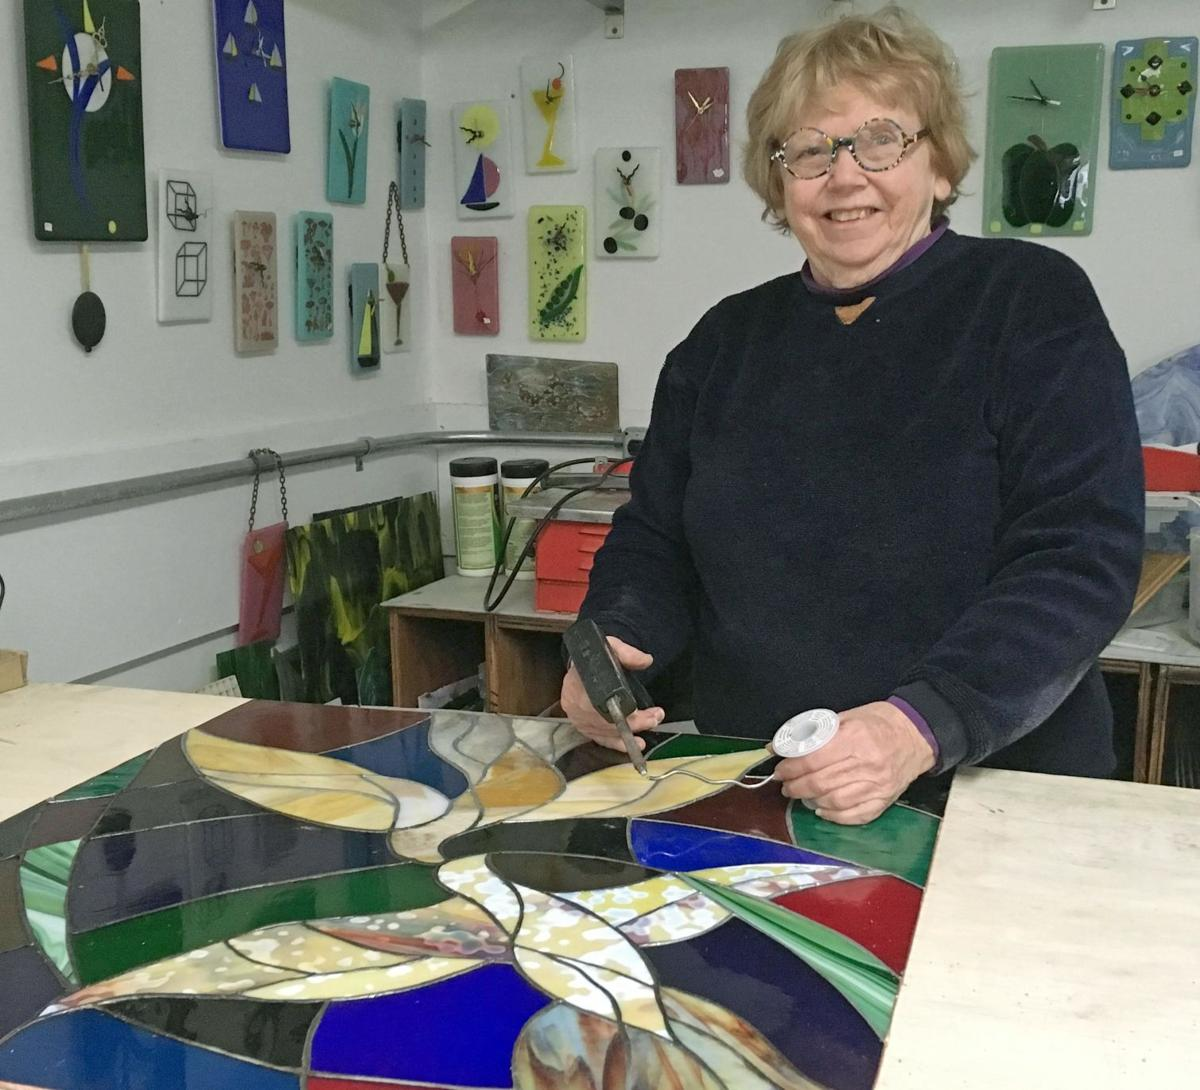 Glass artist shows lifetime of work at Mercy Center